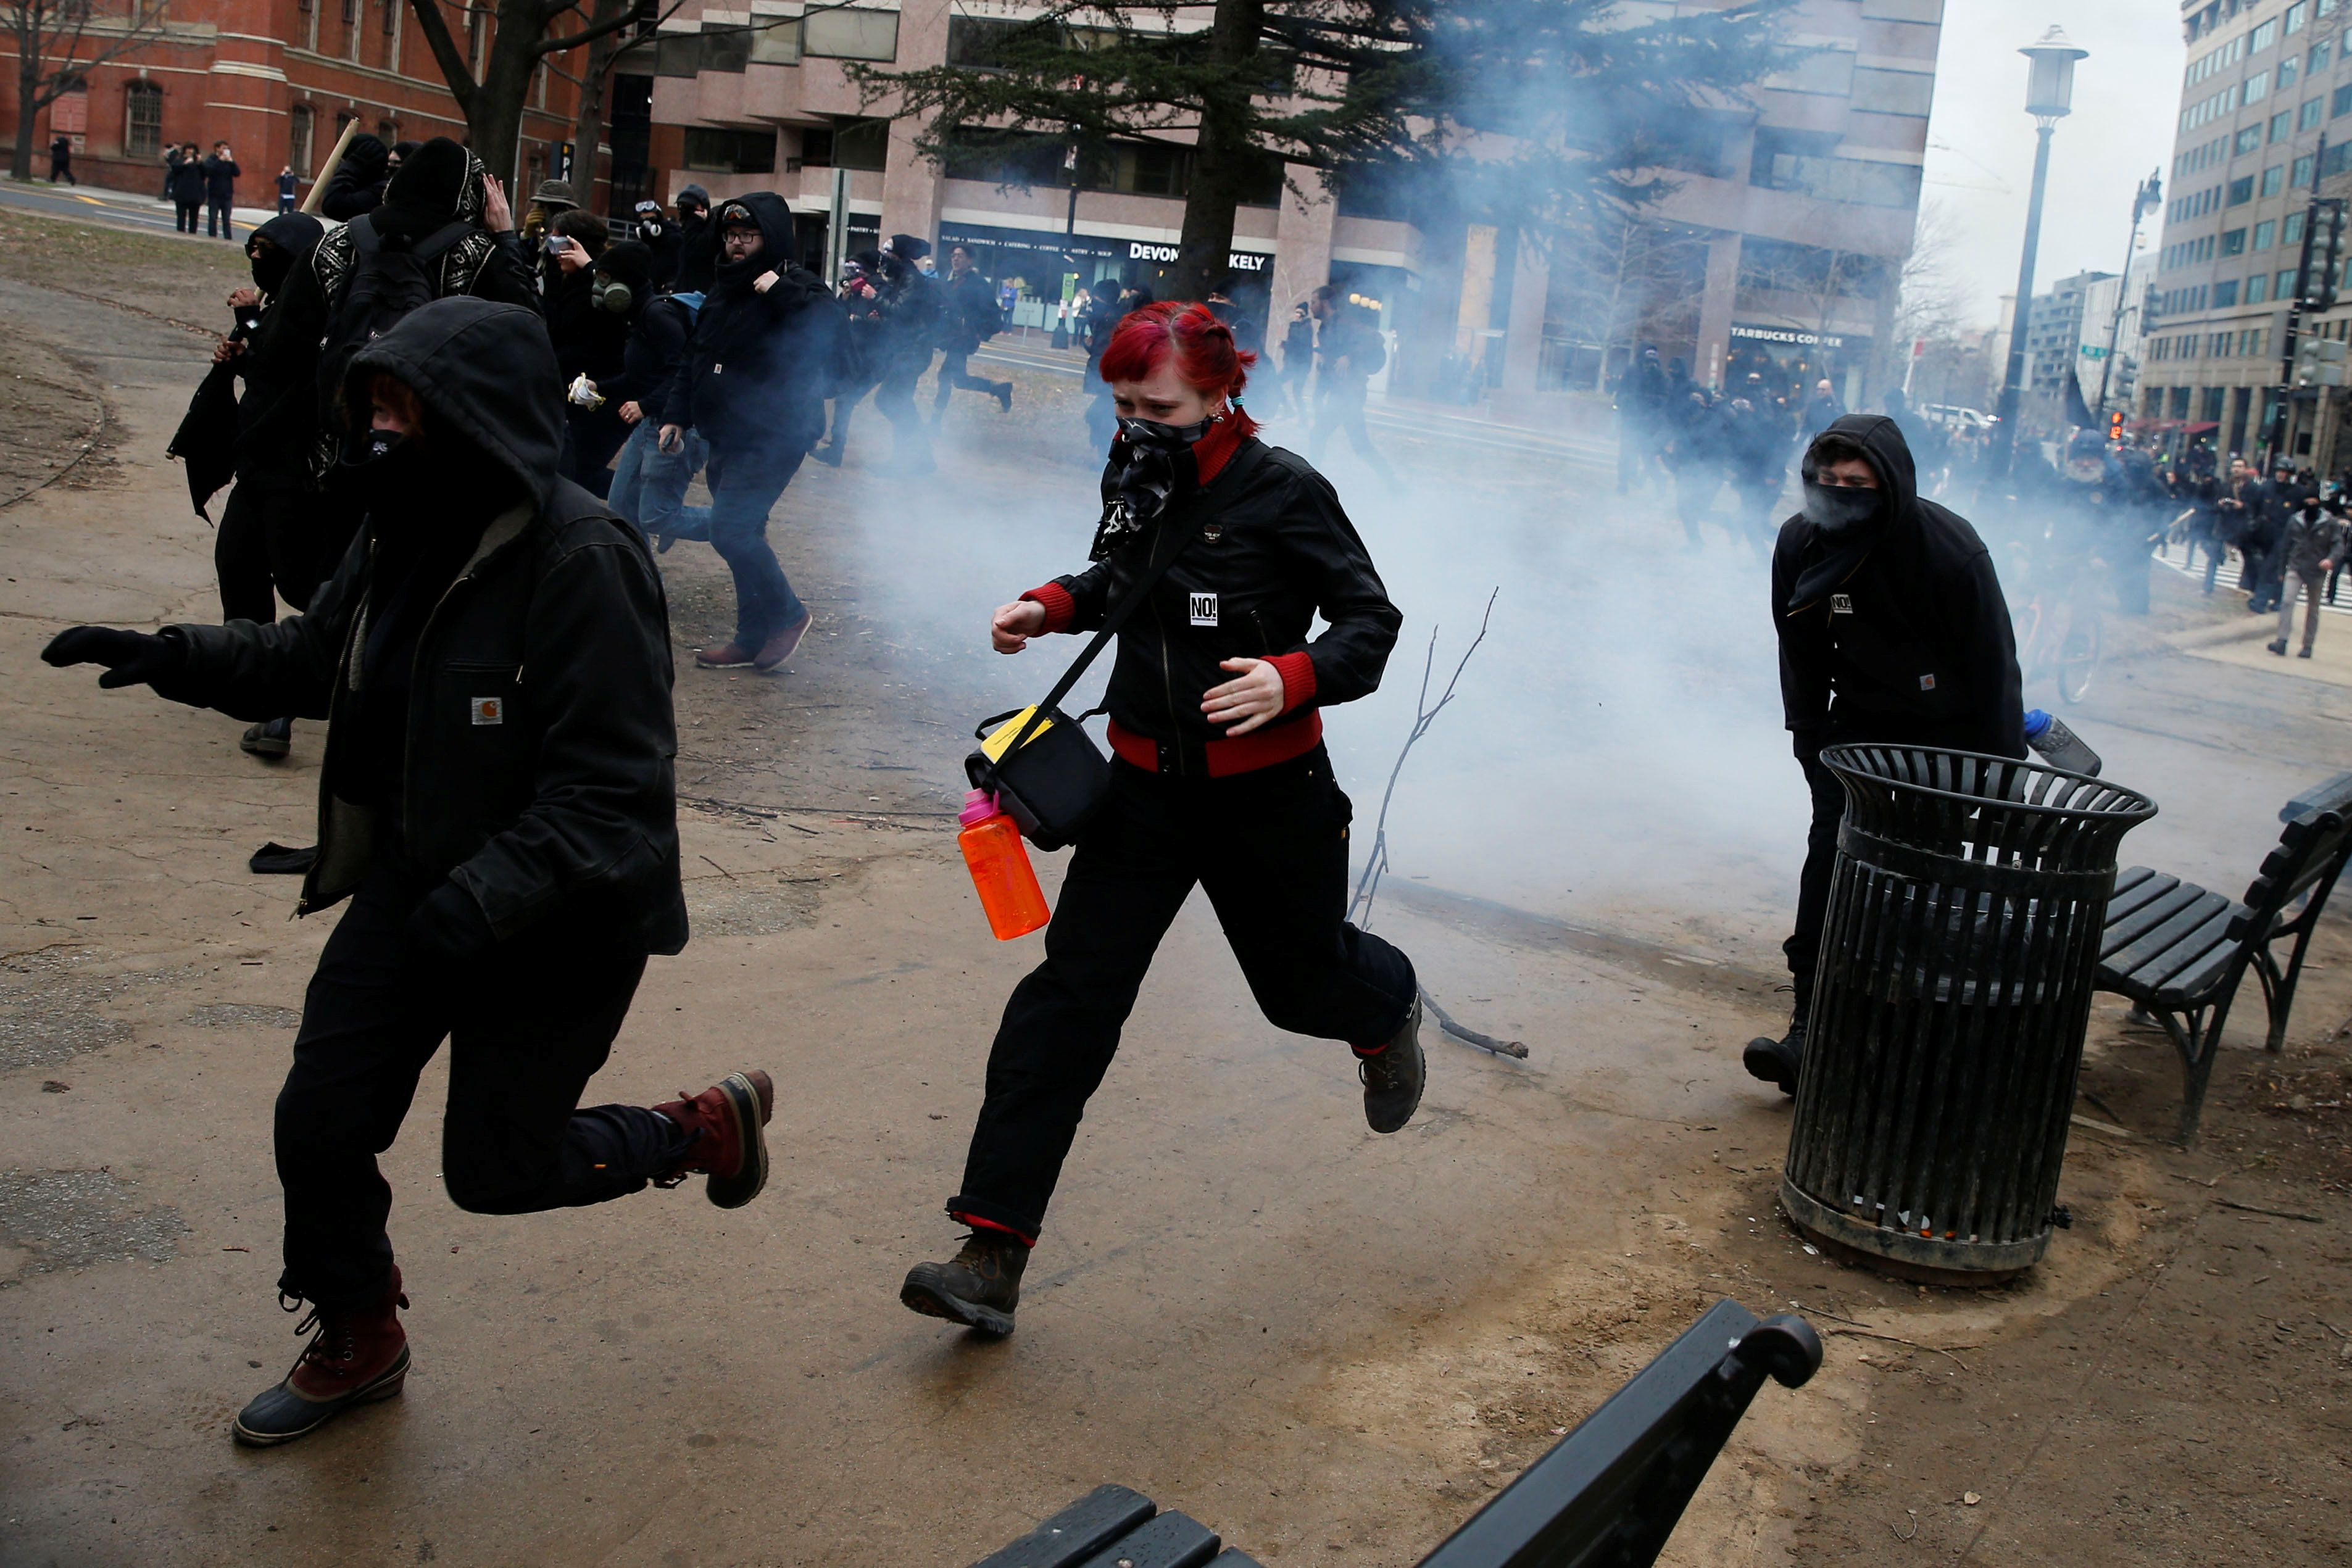 Protests, Violence Flare Around Inaugural